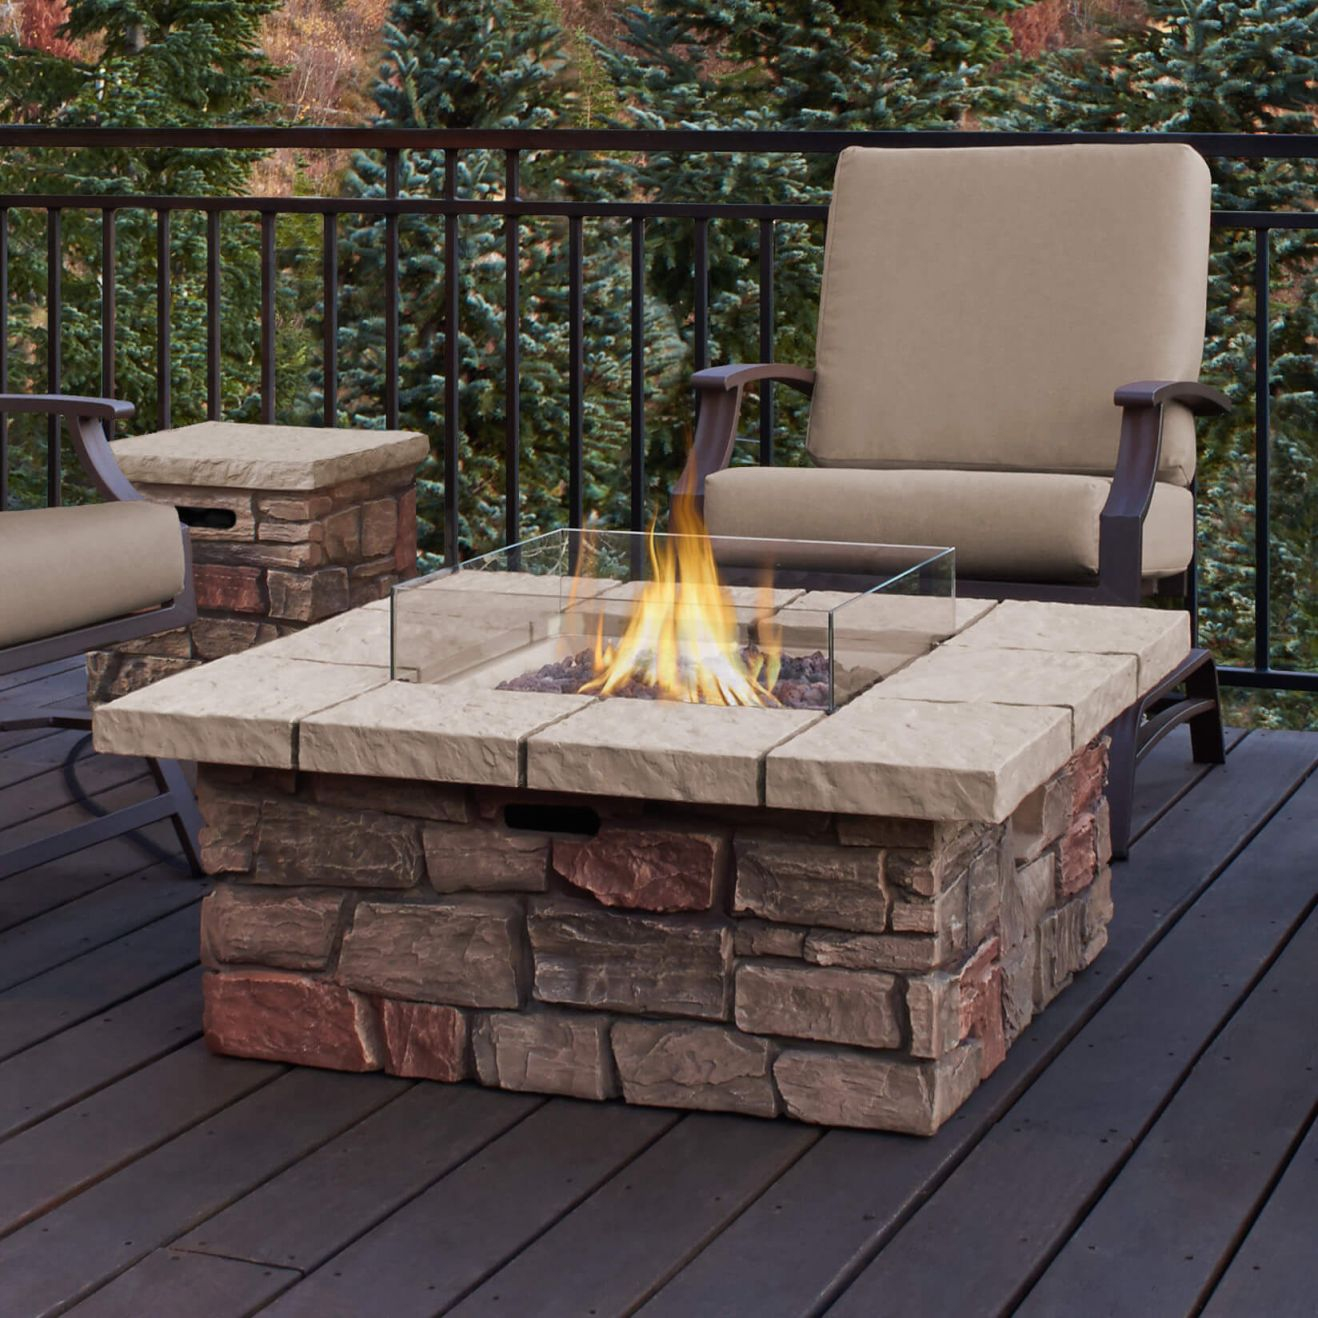 Top 15 Types Of Propane Patio Fire Pits With Table (Buying Guide) throughout Outdoor Propane Fire Pit